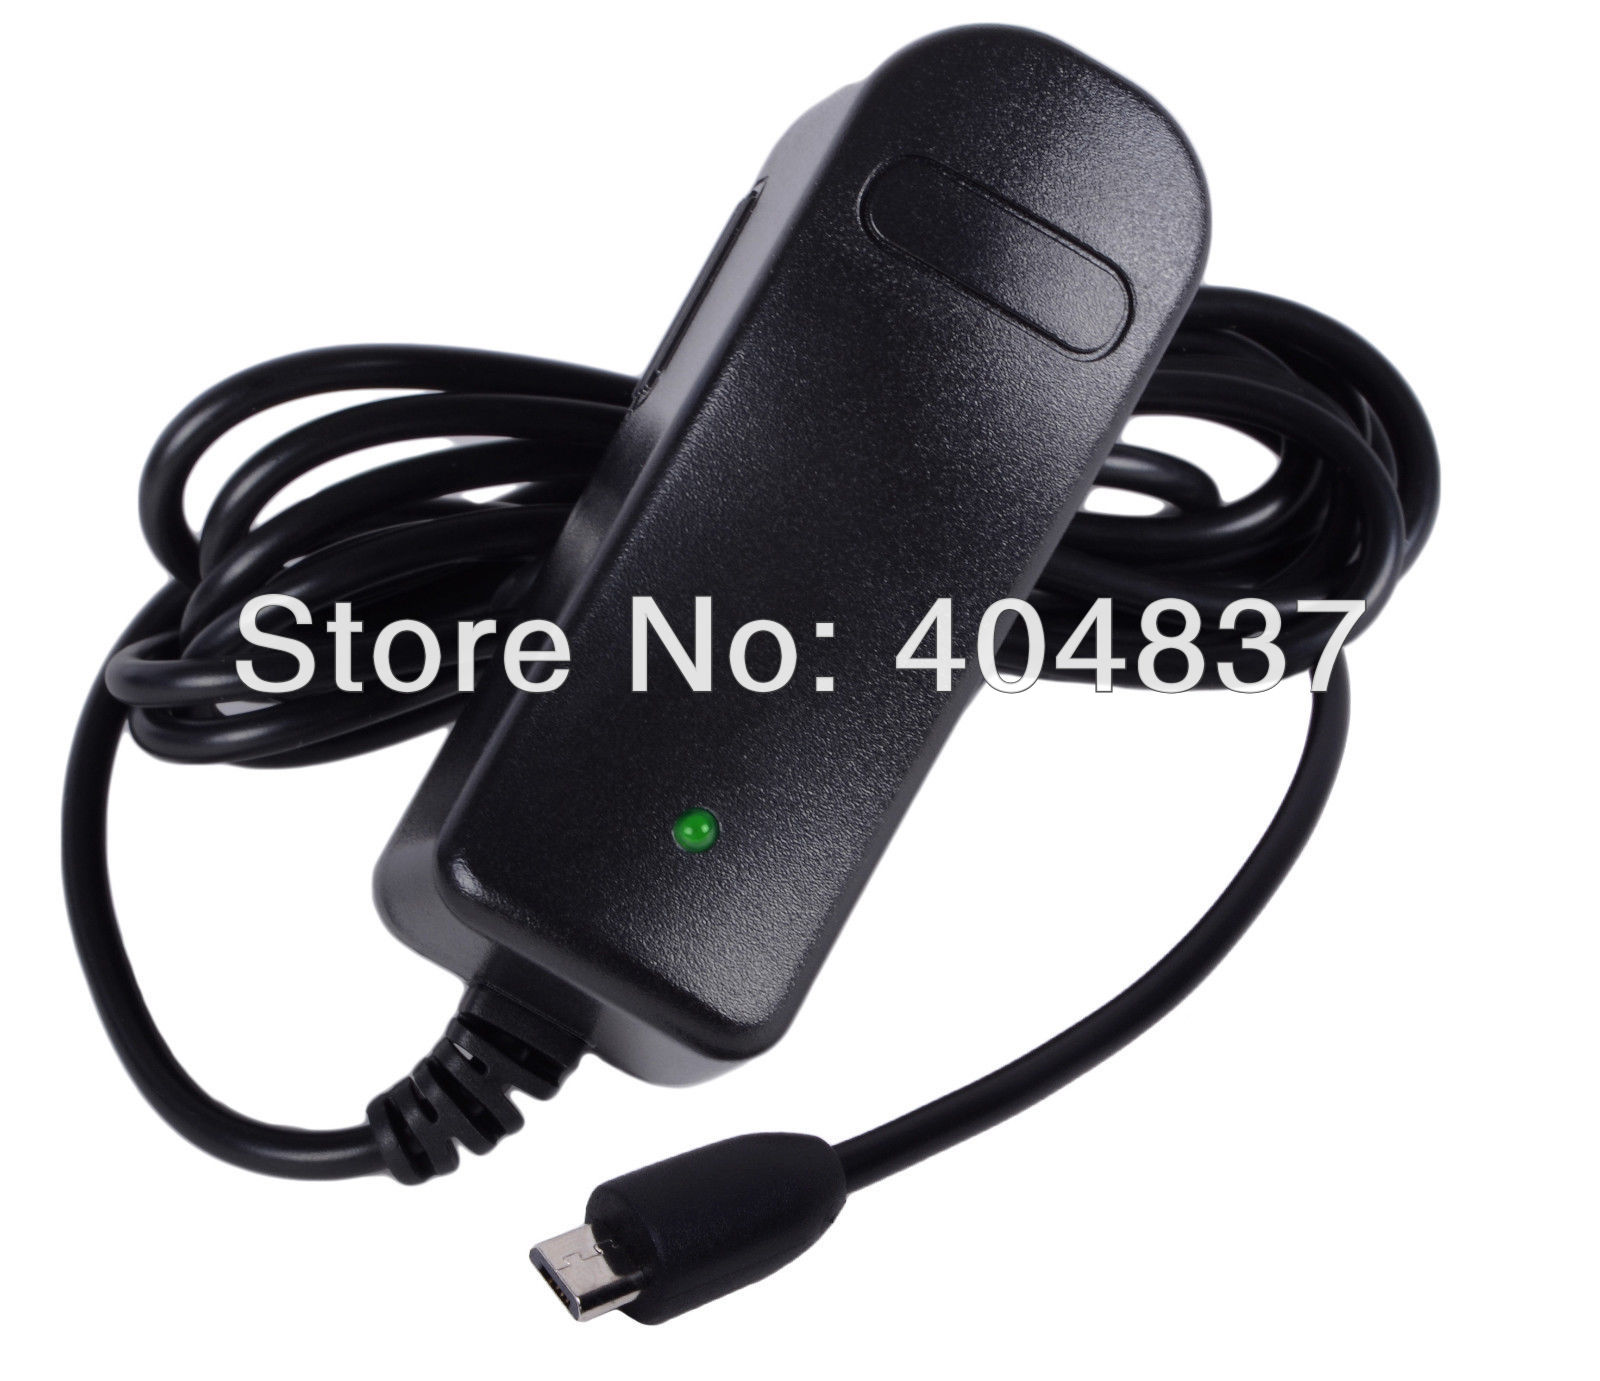 universal EU US plug 5v 2a 2000ma micro usb charger power supply adapter tablet pc mobile cell phones - LJF Store store